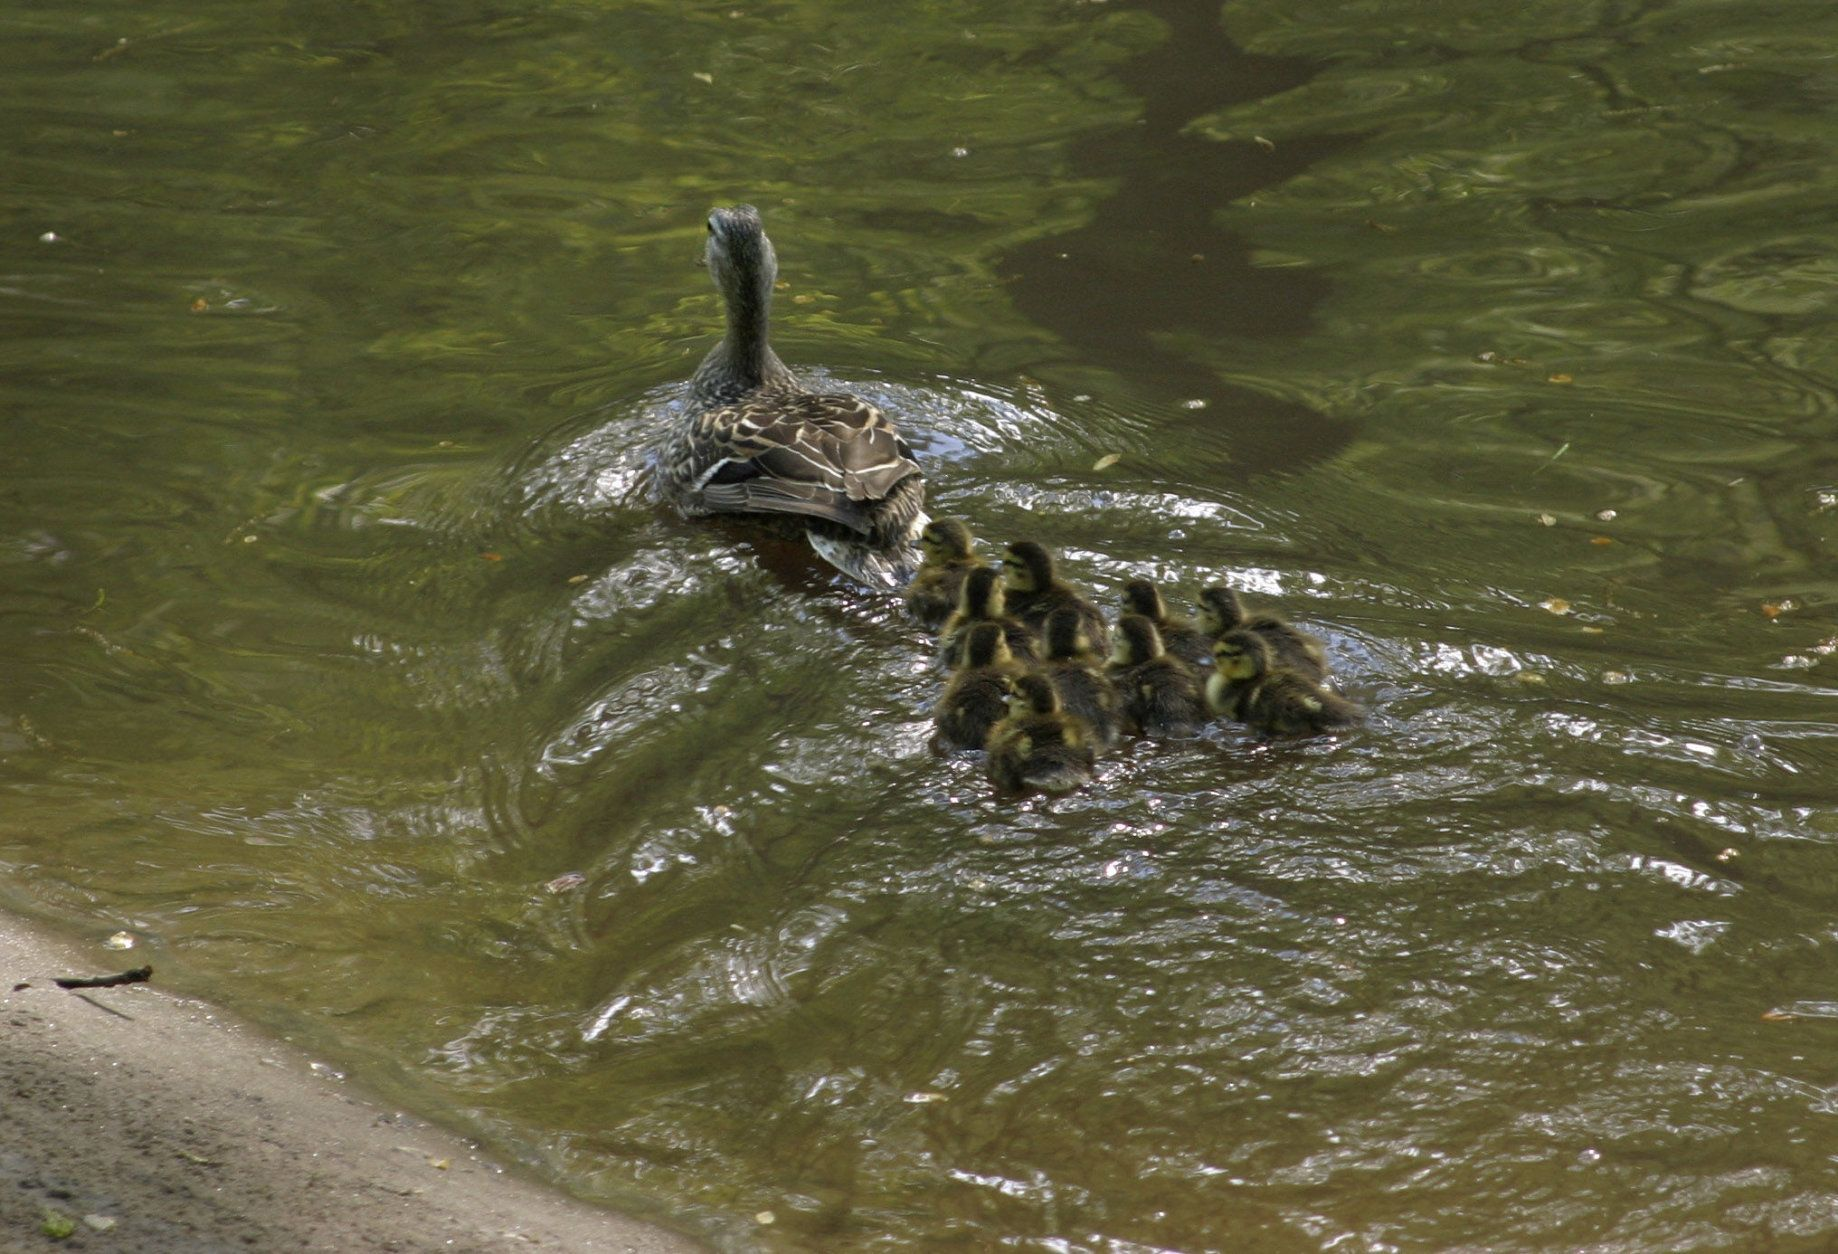 A mother mallard duck takes a first swim with her ducklings in Rock Creek Park after being transported to the there in a motorcade Sunday May 1, 2005, after the ducklings hatched in front of the U.S. Treasury building on Pennsylvania Avenue near the White House, where the mother mallard had nested for four weeks.  (AP Photo/Adele Starr/Pool)